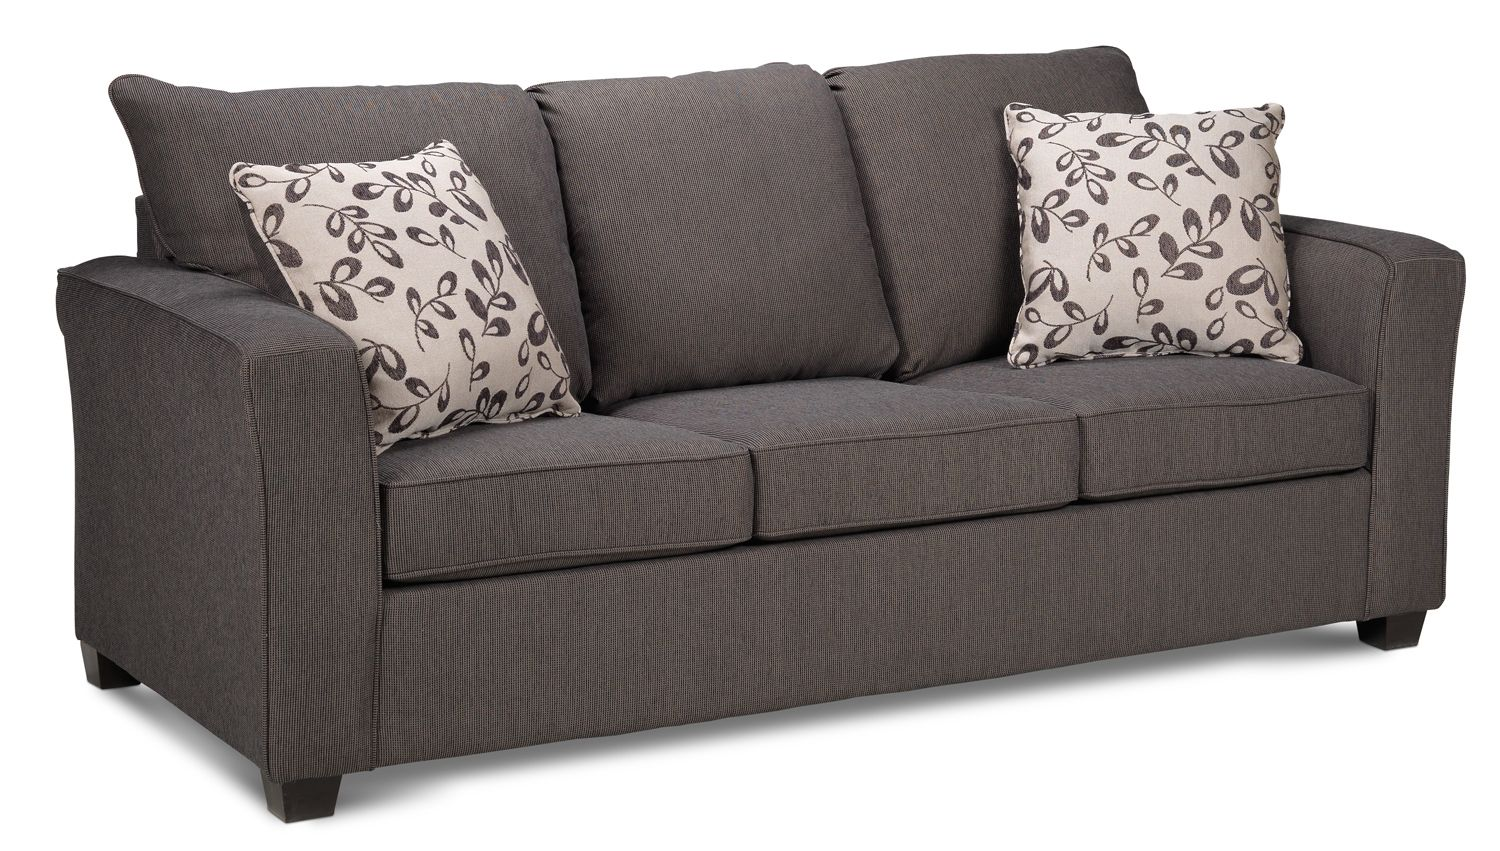 Dina Ii Upholstery Full Sofabed Leon S Fold Out Coach Side